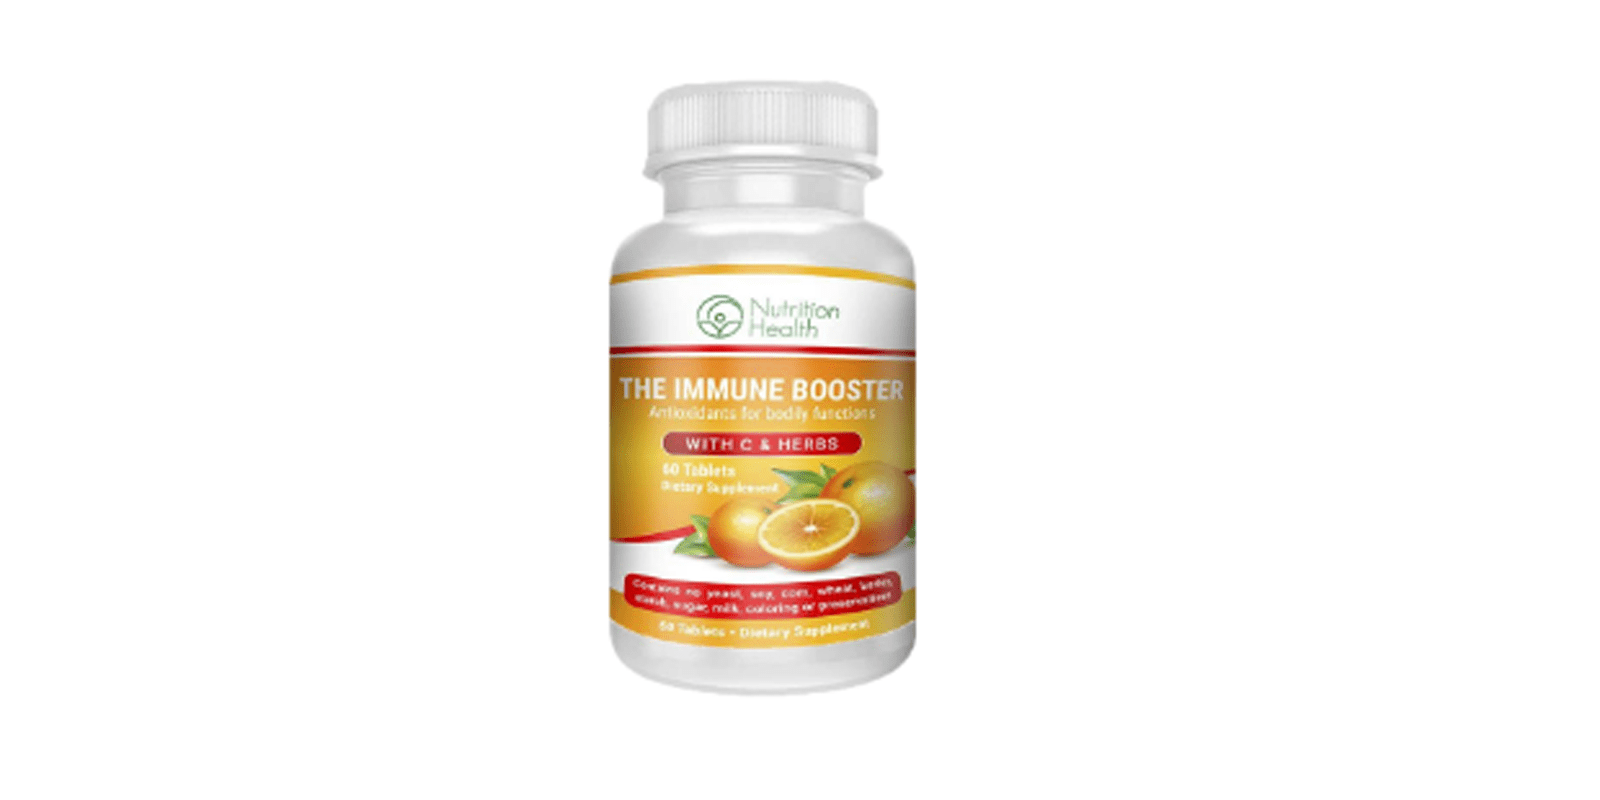 Nutrition Health Immune Booster Review